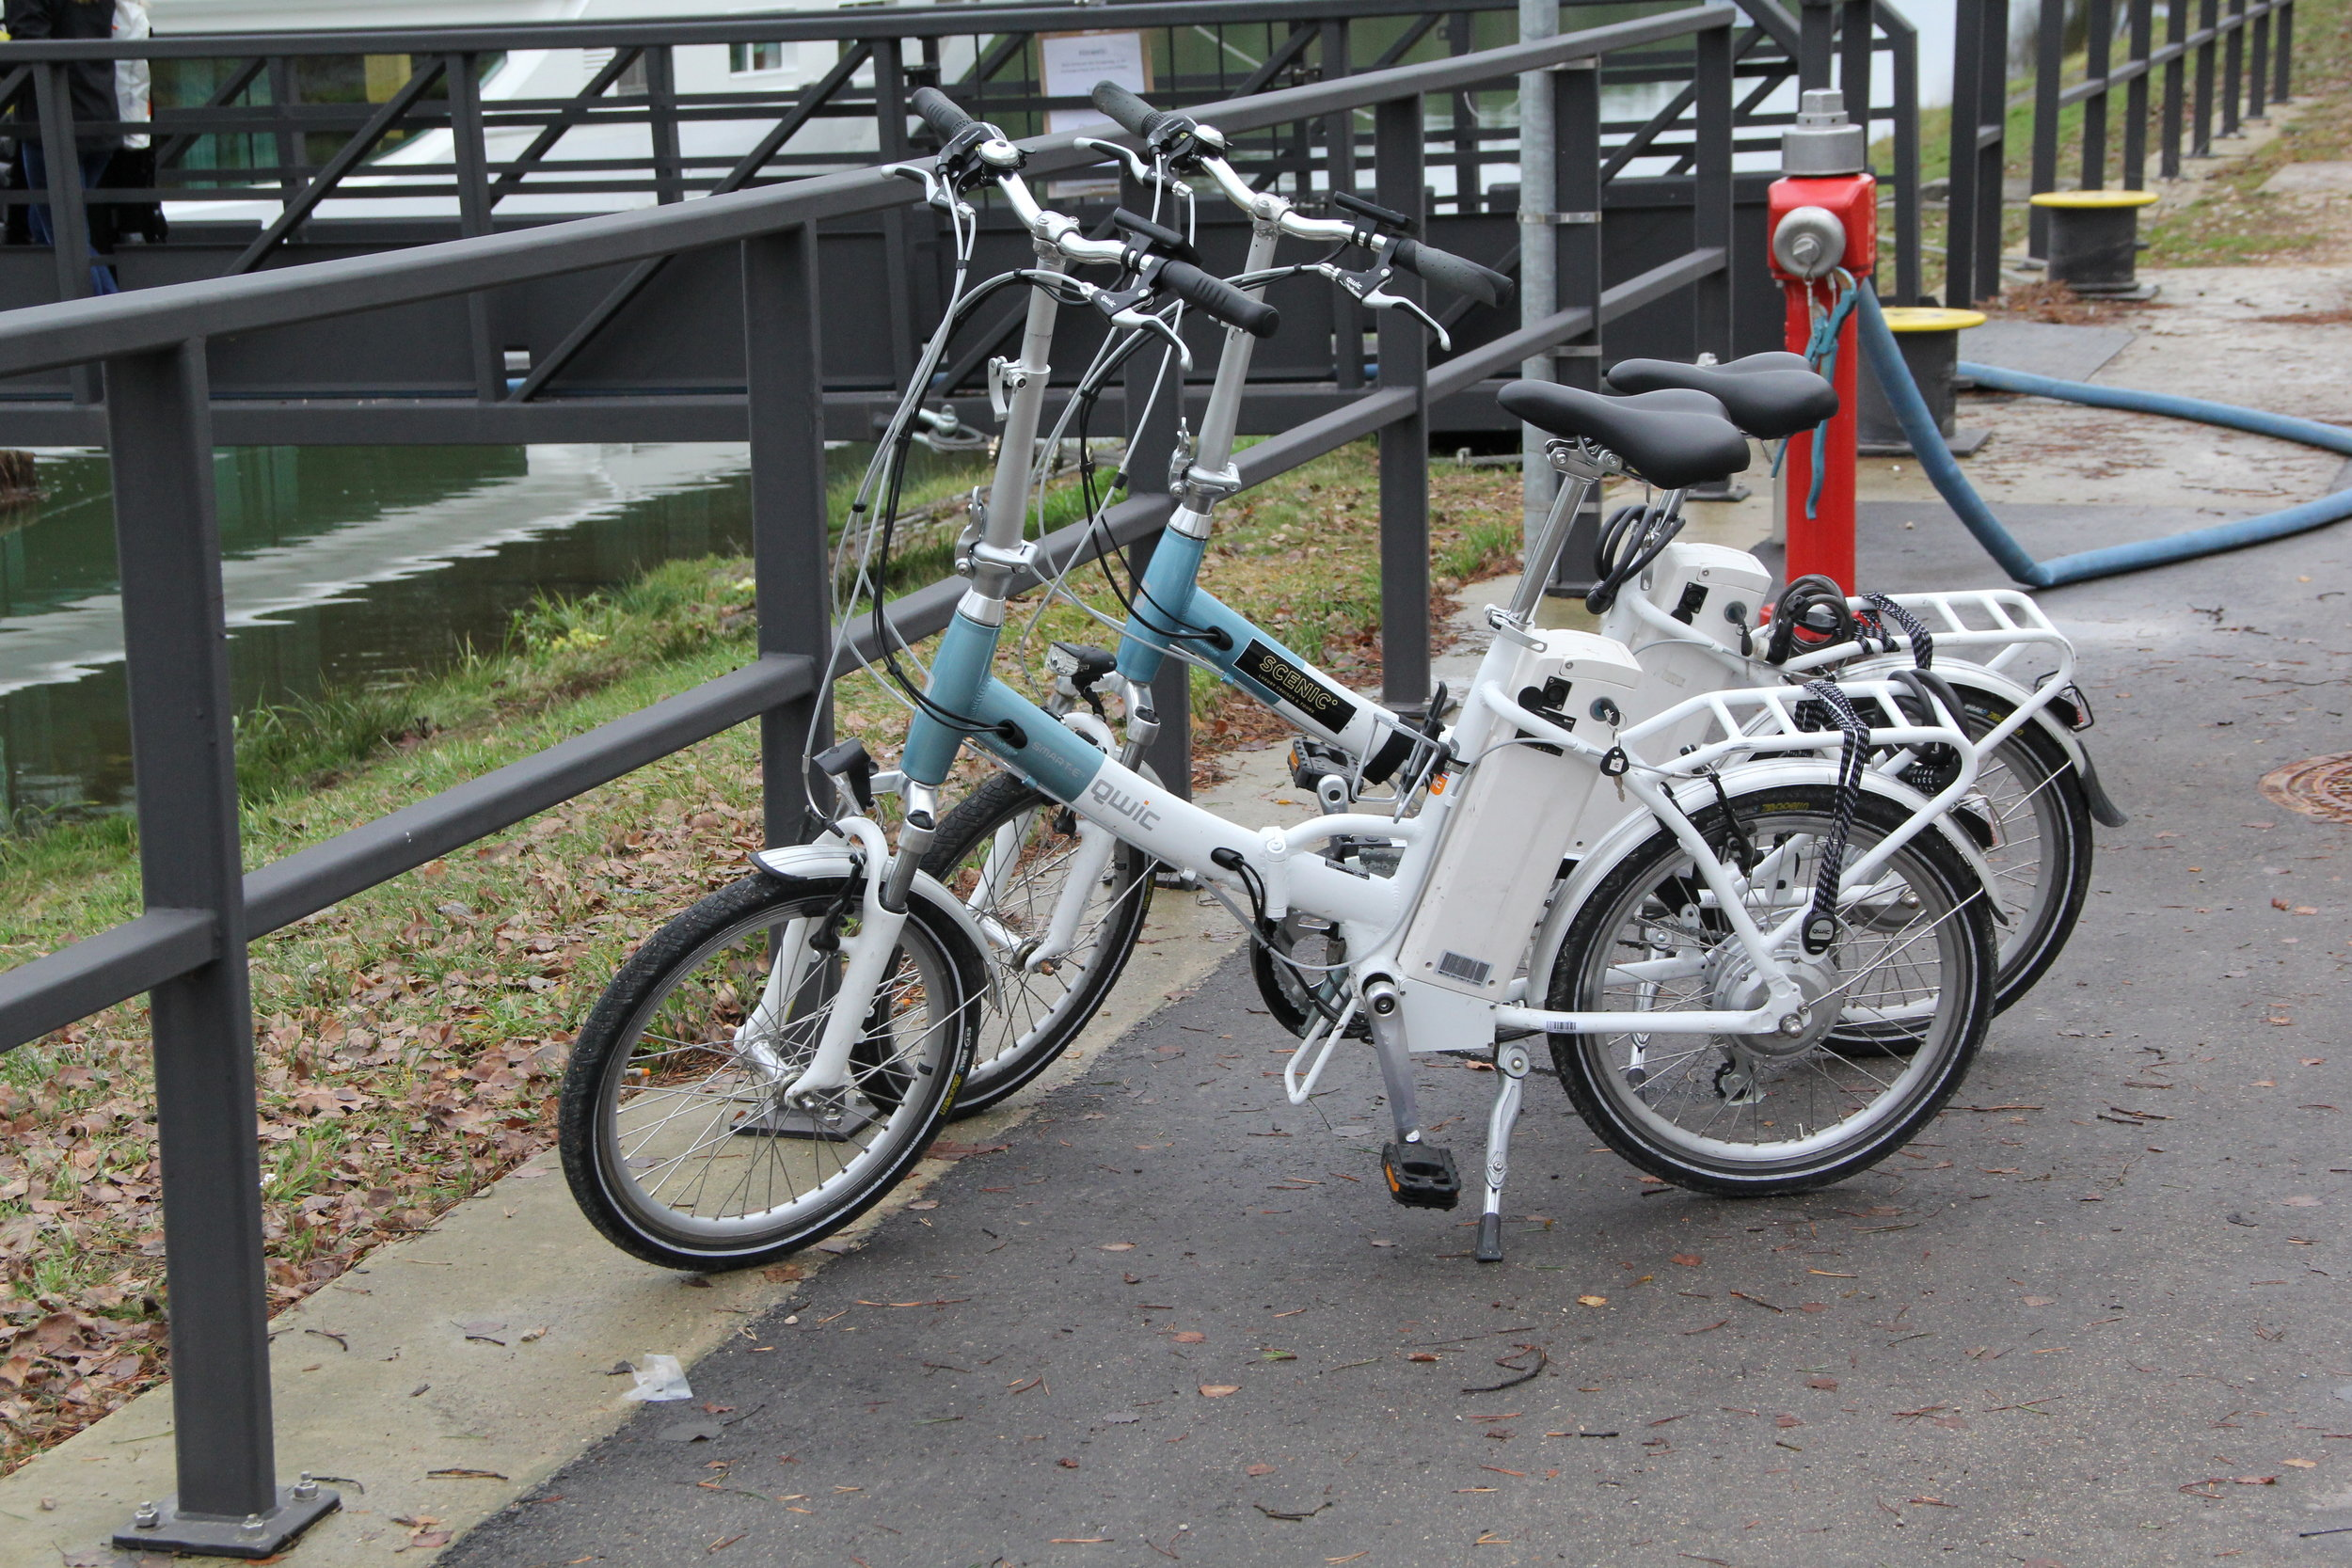 Ebikes ready to go on our Scenic Opel Upper Danube River Cruise